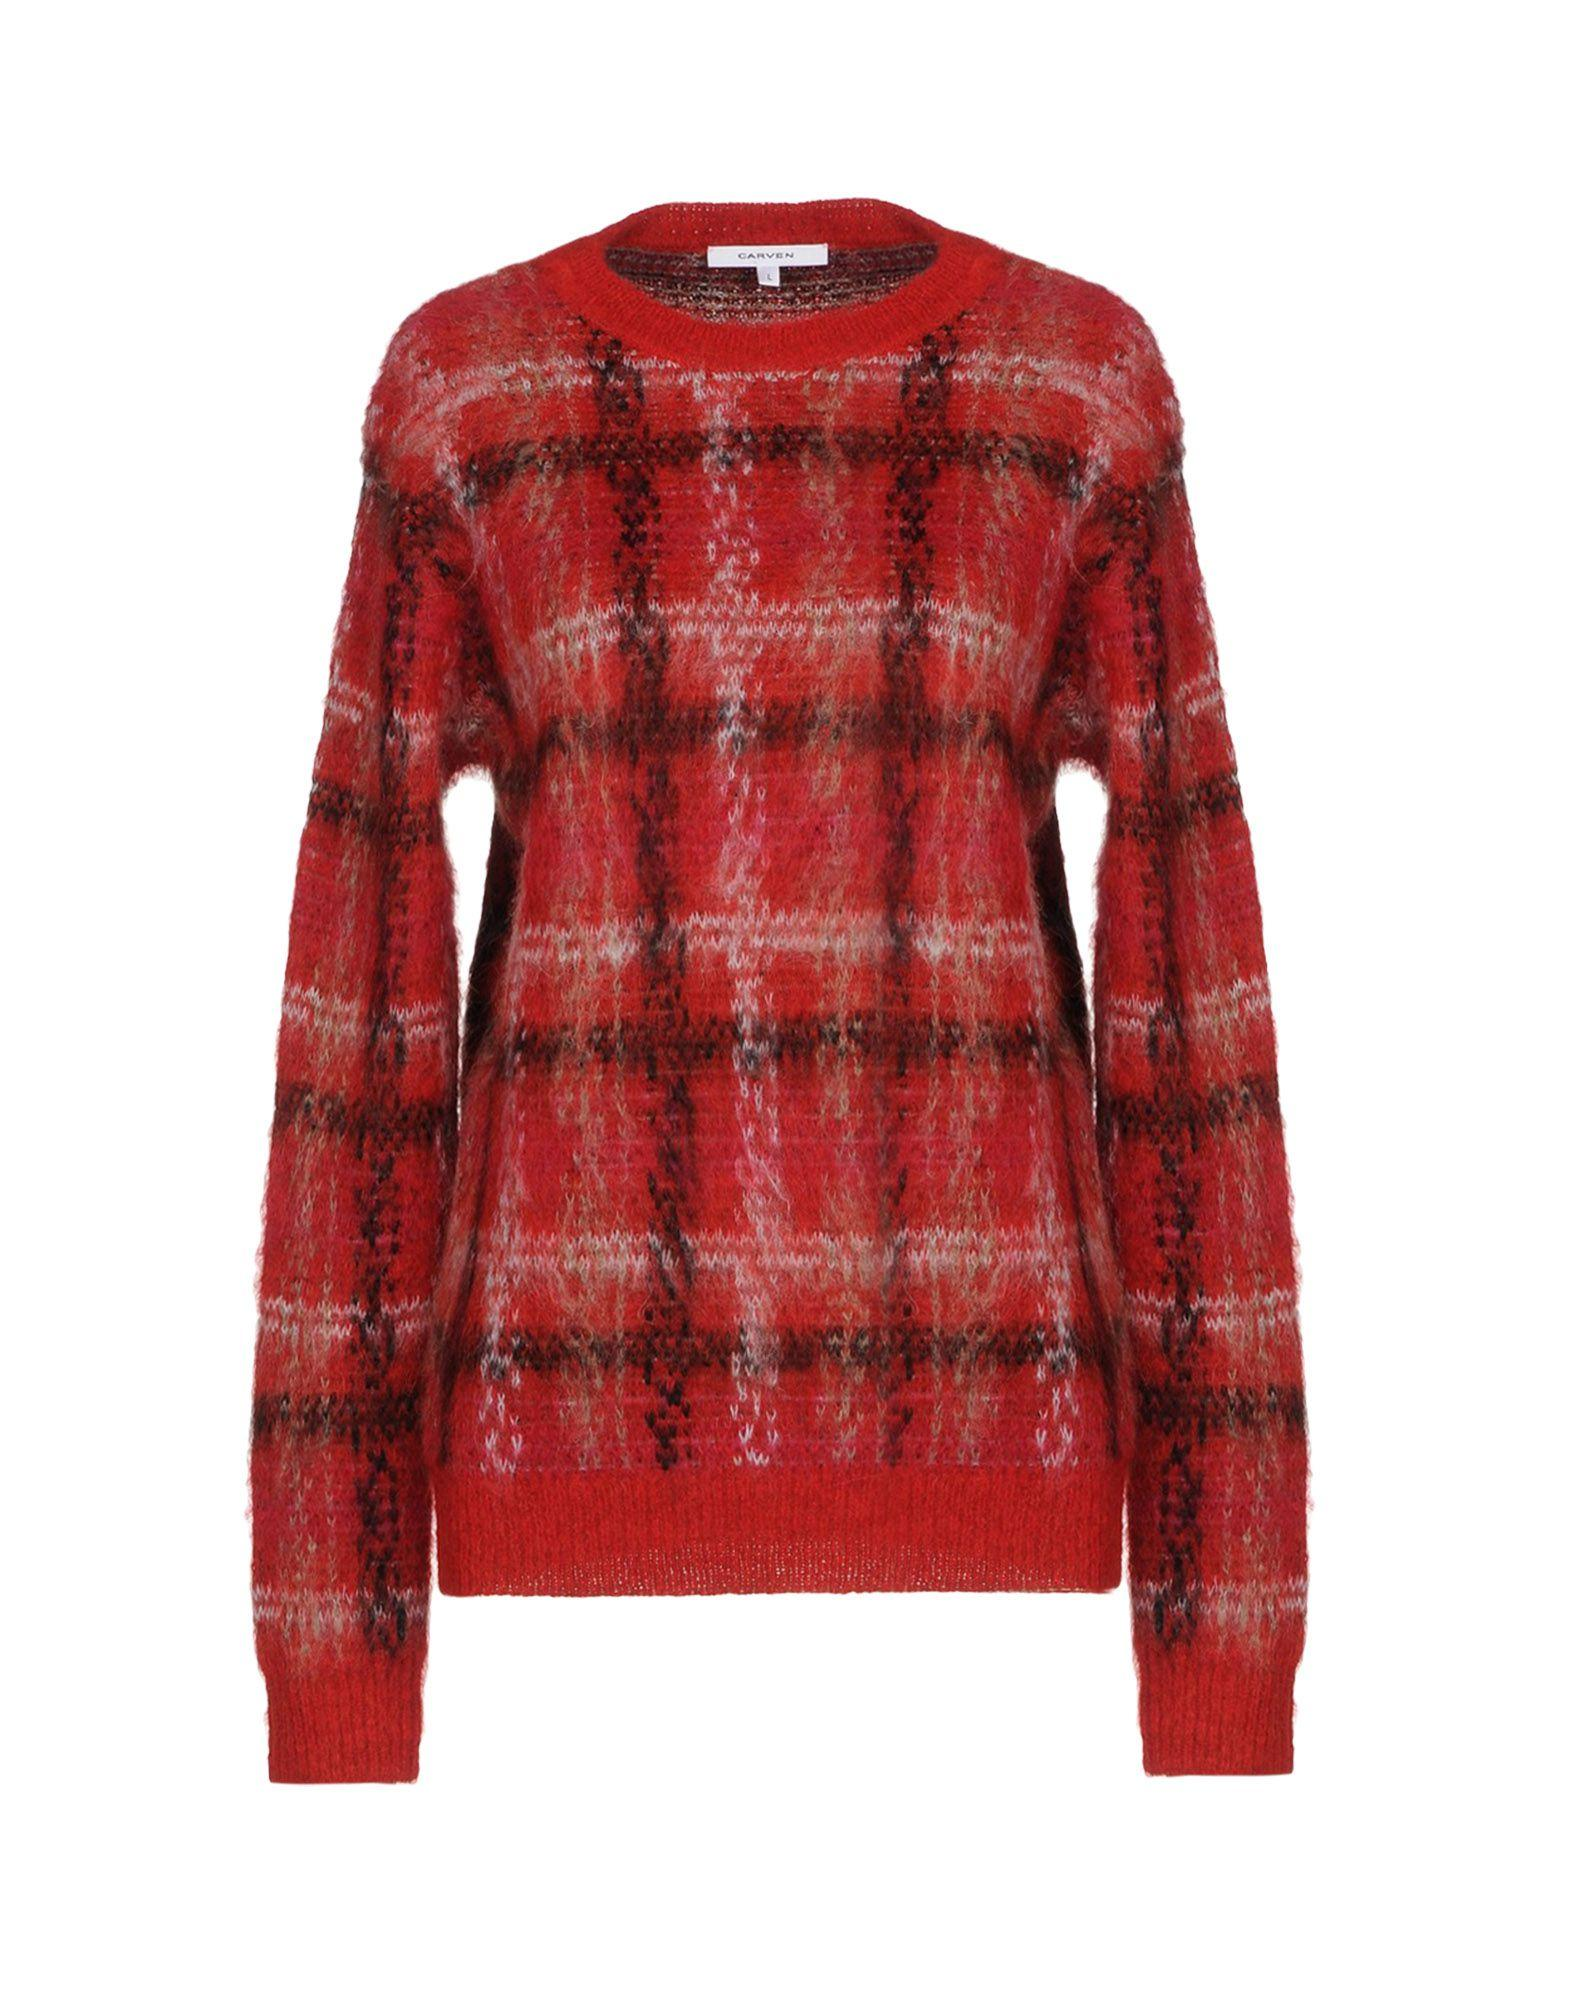 Carven Sweater In Brick Red